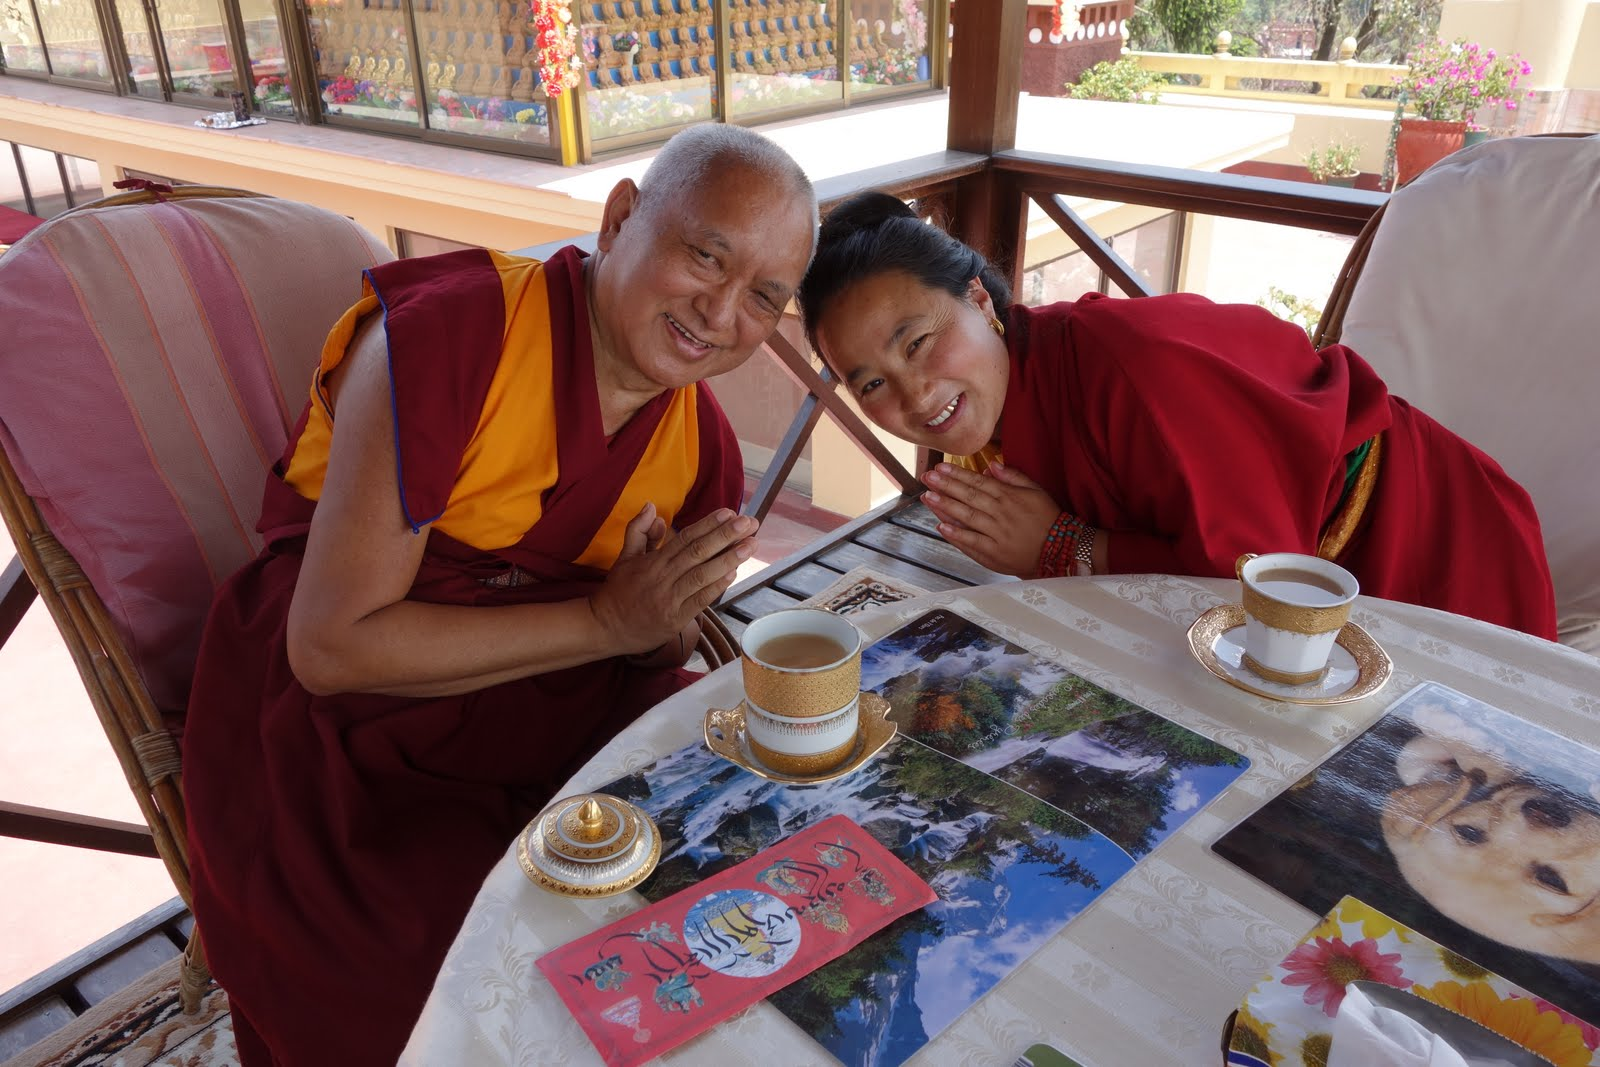 Rinpoche and Khadro-la together having tea following the long life puja at Kopan. Photo by Ven.Roger Kunsang